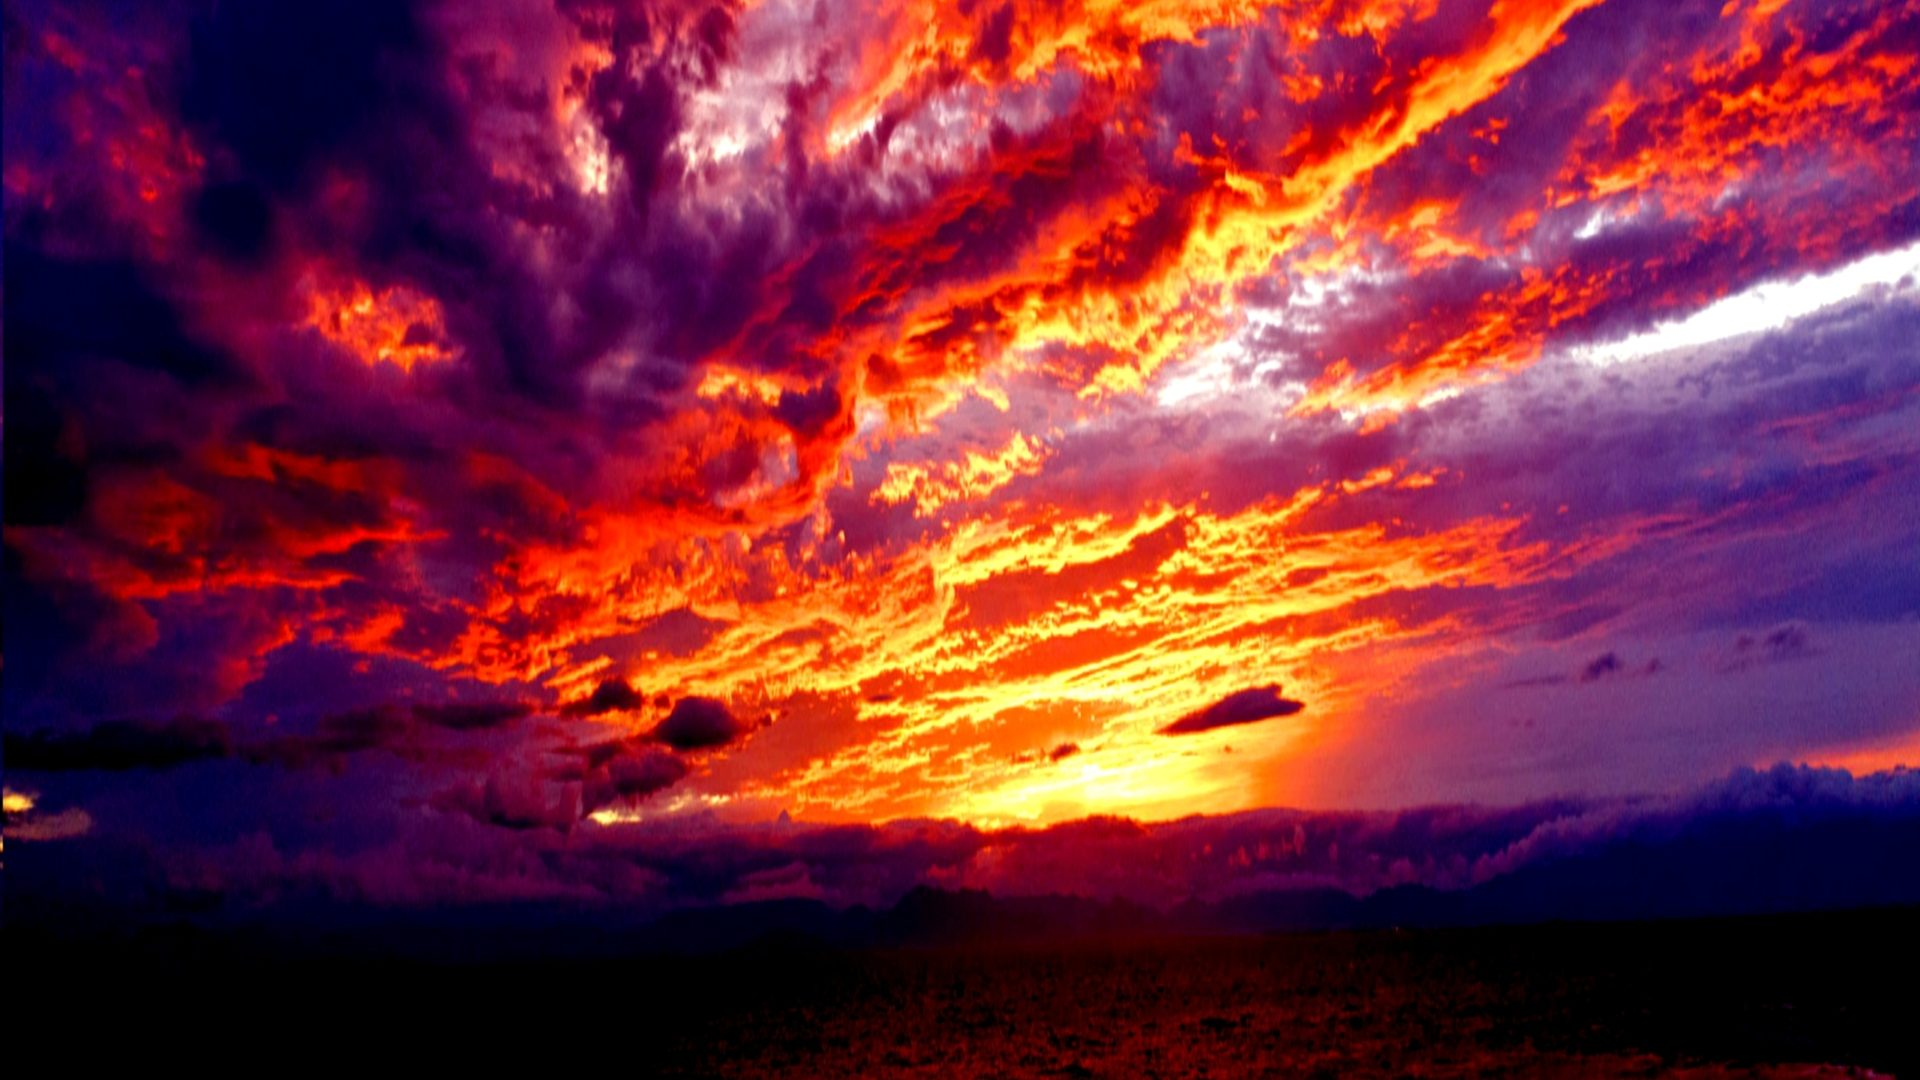 Bright Hd Wallpapers For Iphone Magical Sunset Wide Wallpaper 508090 Wallpapers13 Com